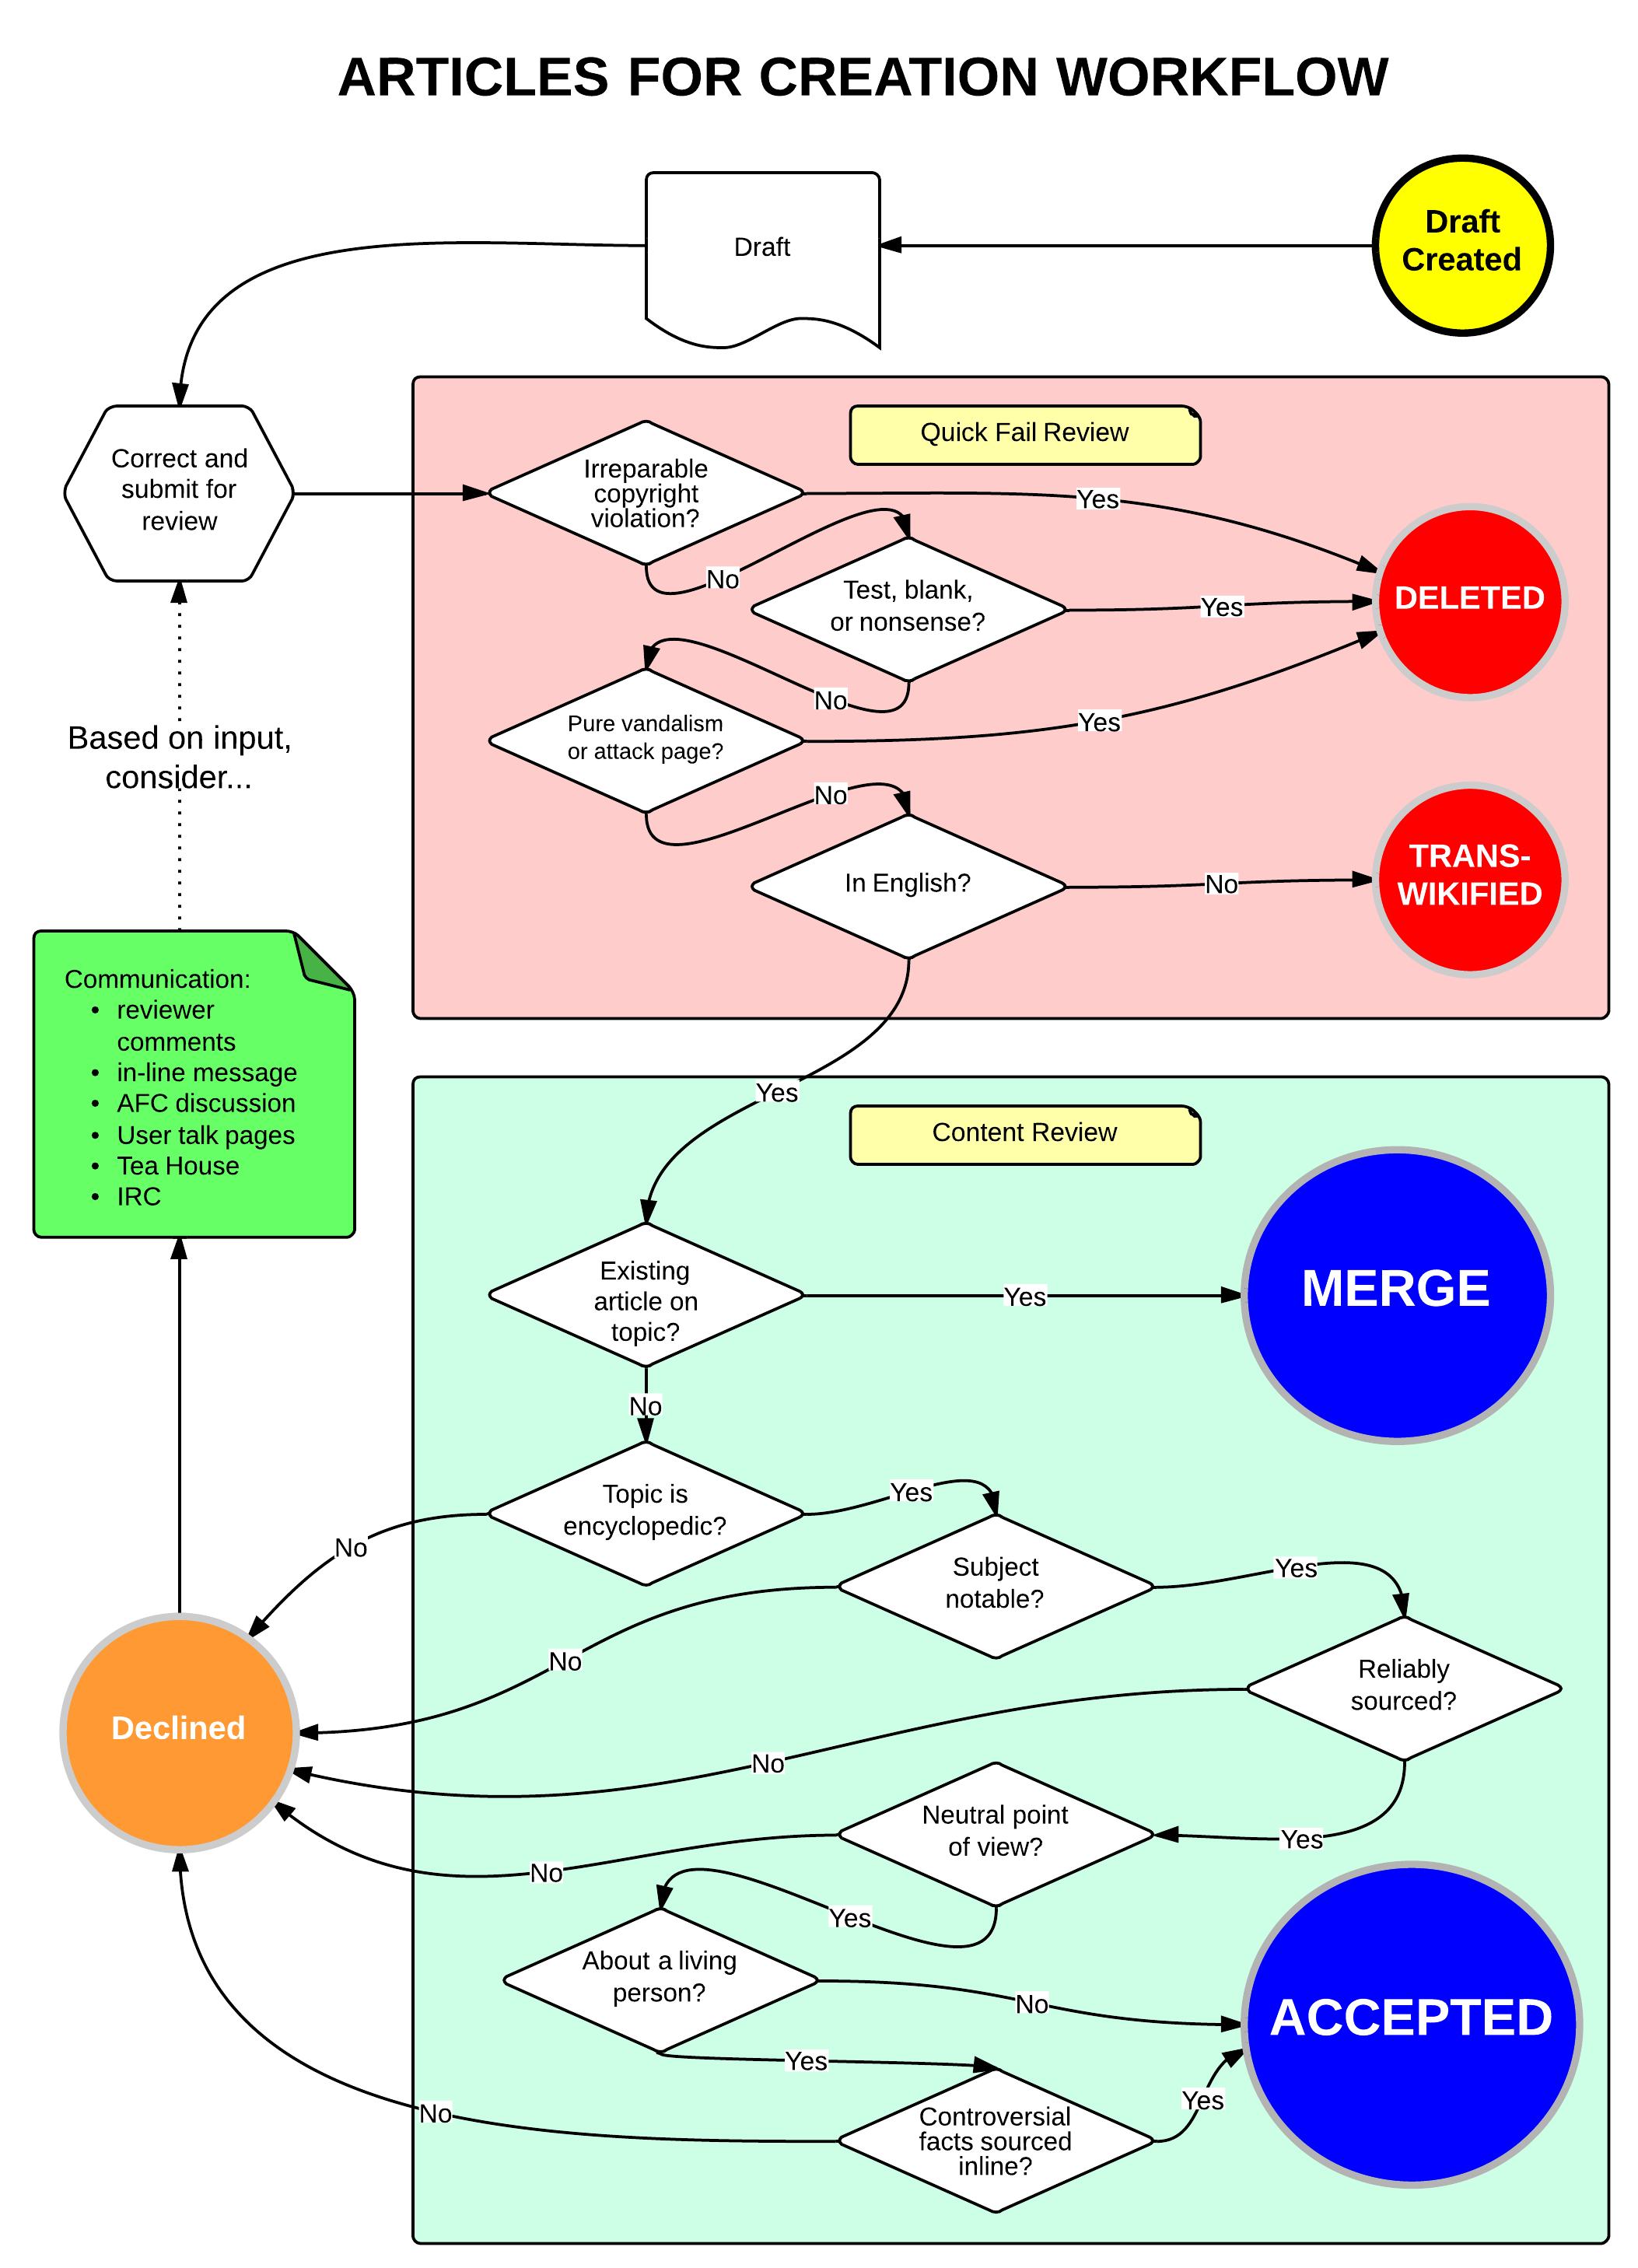 Fileflow chart for afc 31g wikipedia fileflow chart for afc 31g nvjuhfo Choice Image